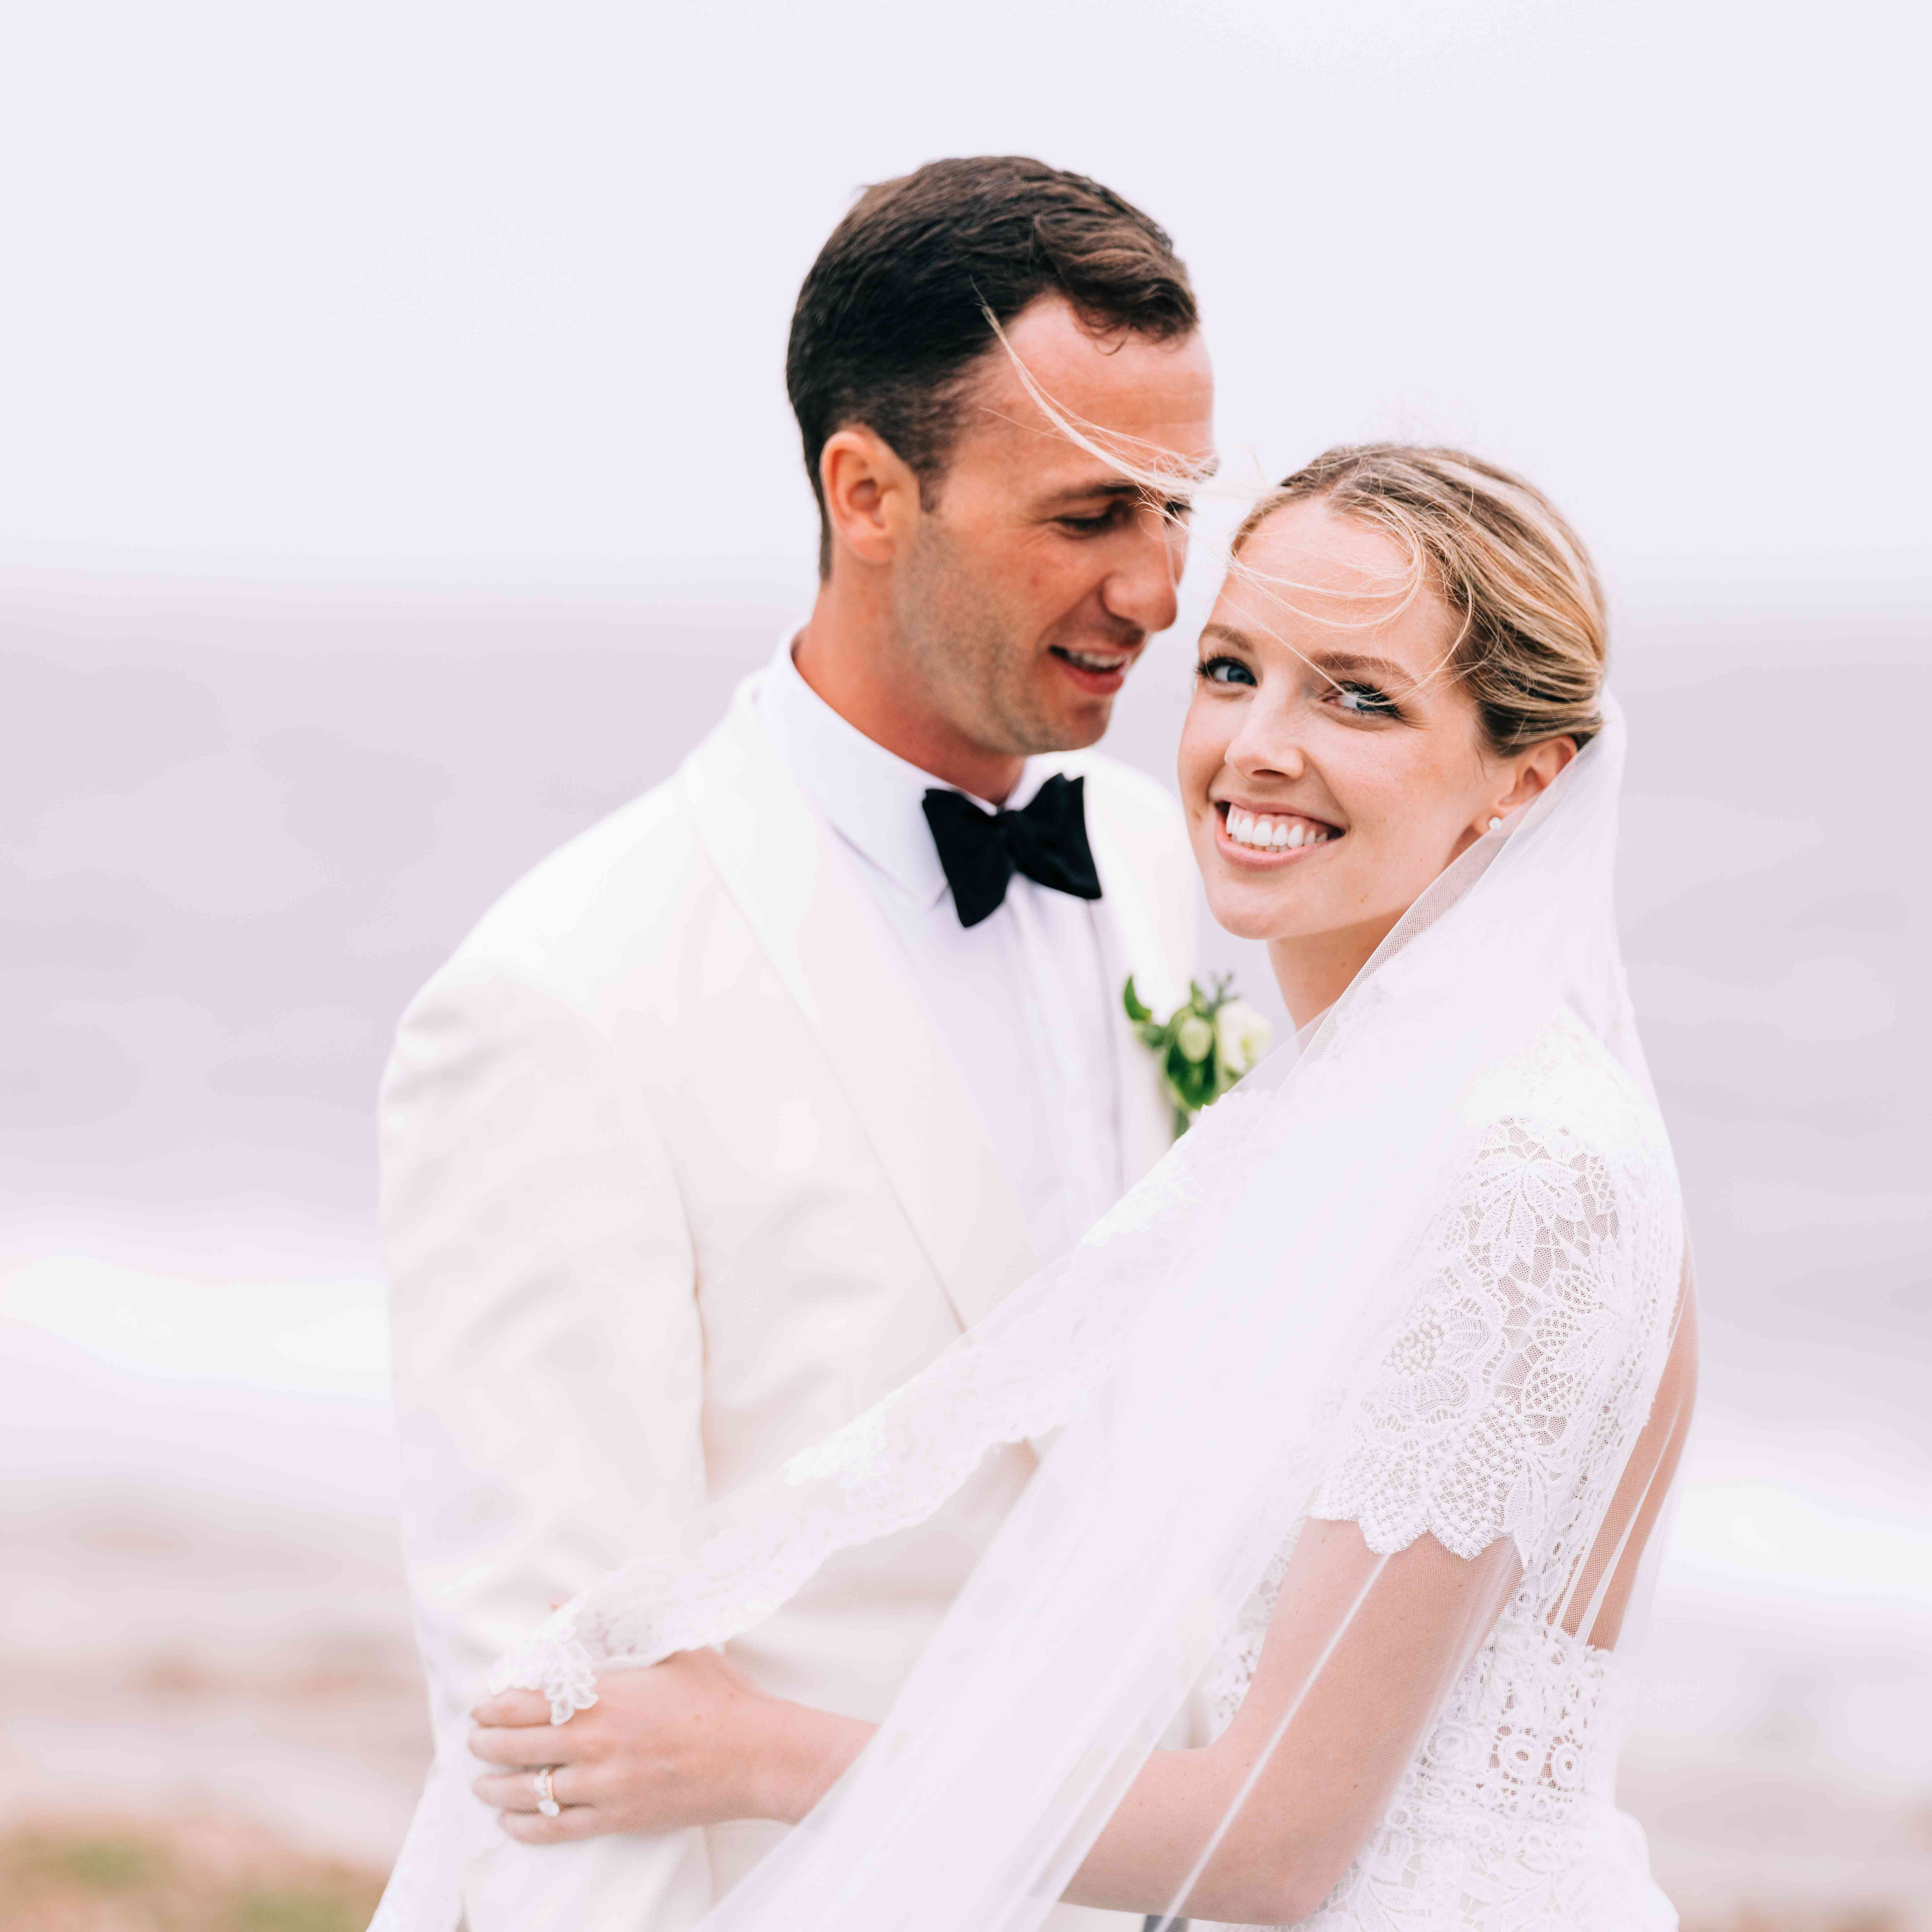 <p>bride and groom in white jacket</p><br><br>